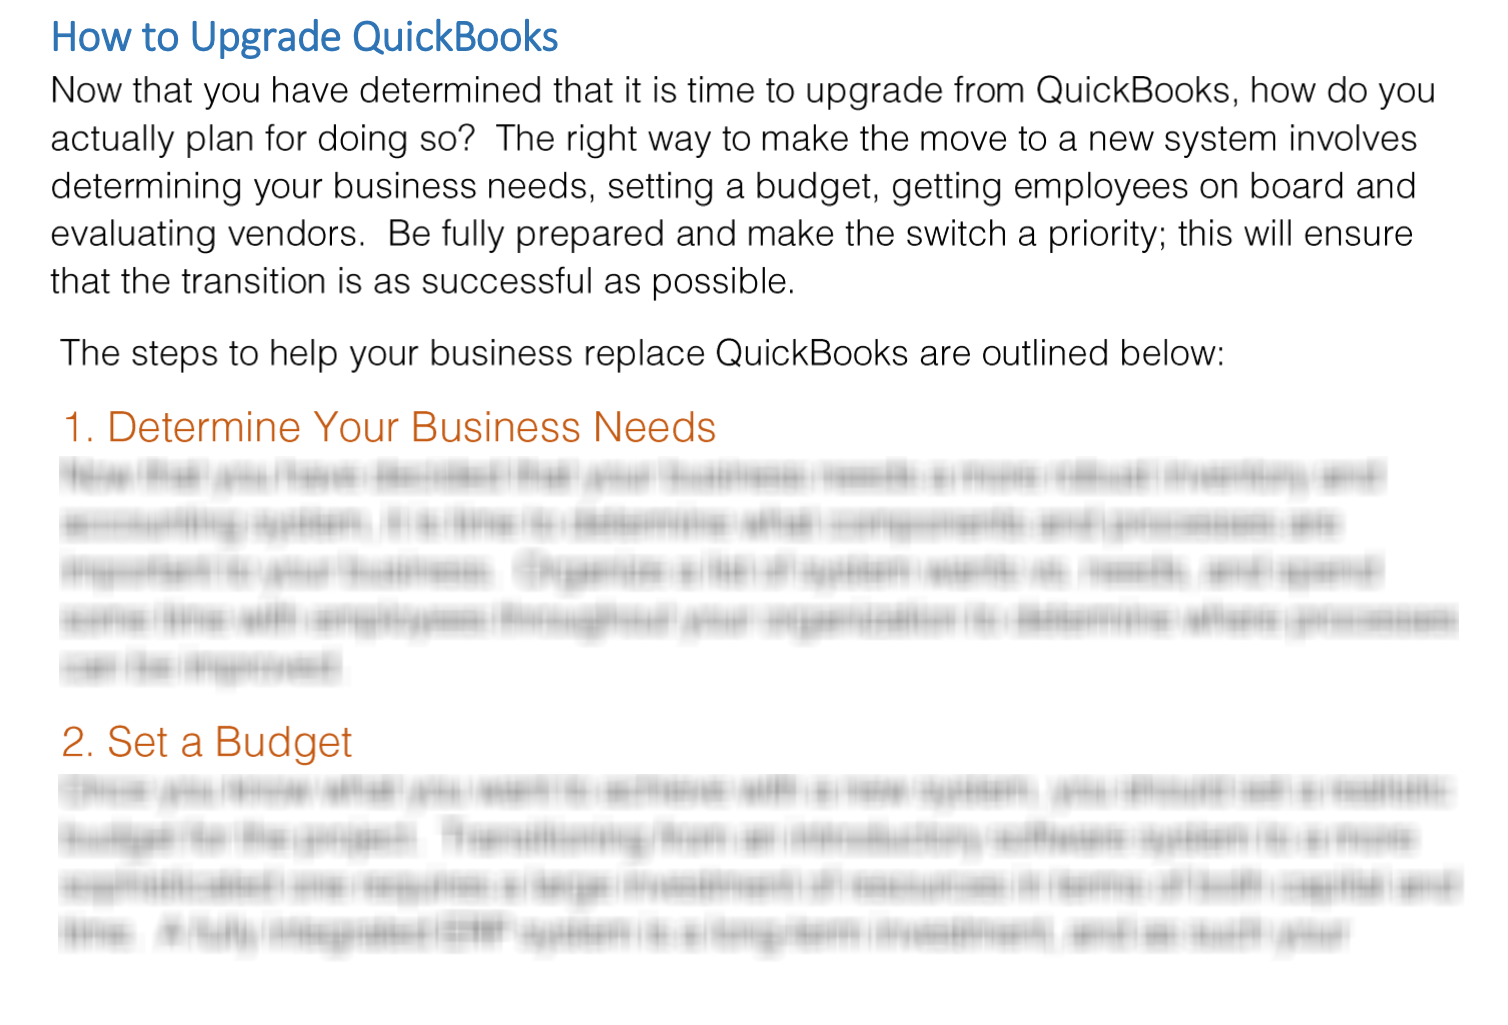 Replace QuickBooks Preview Text